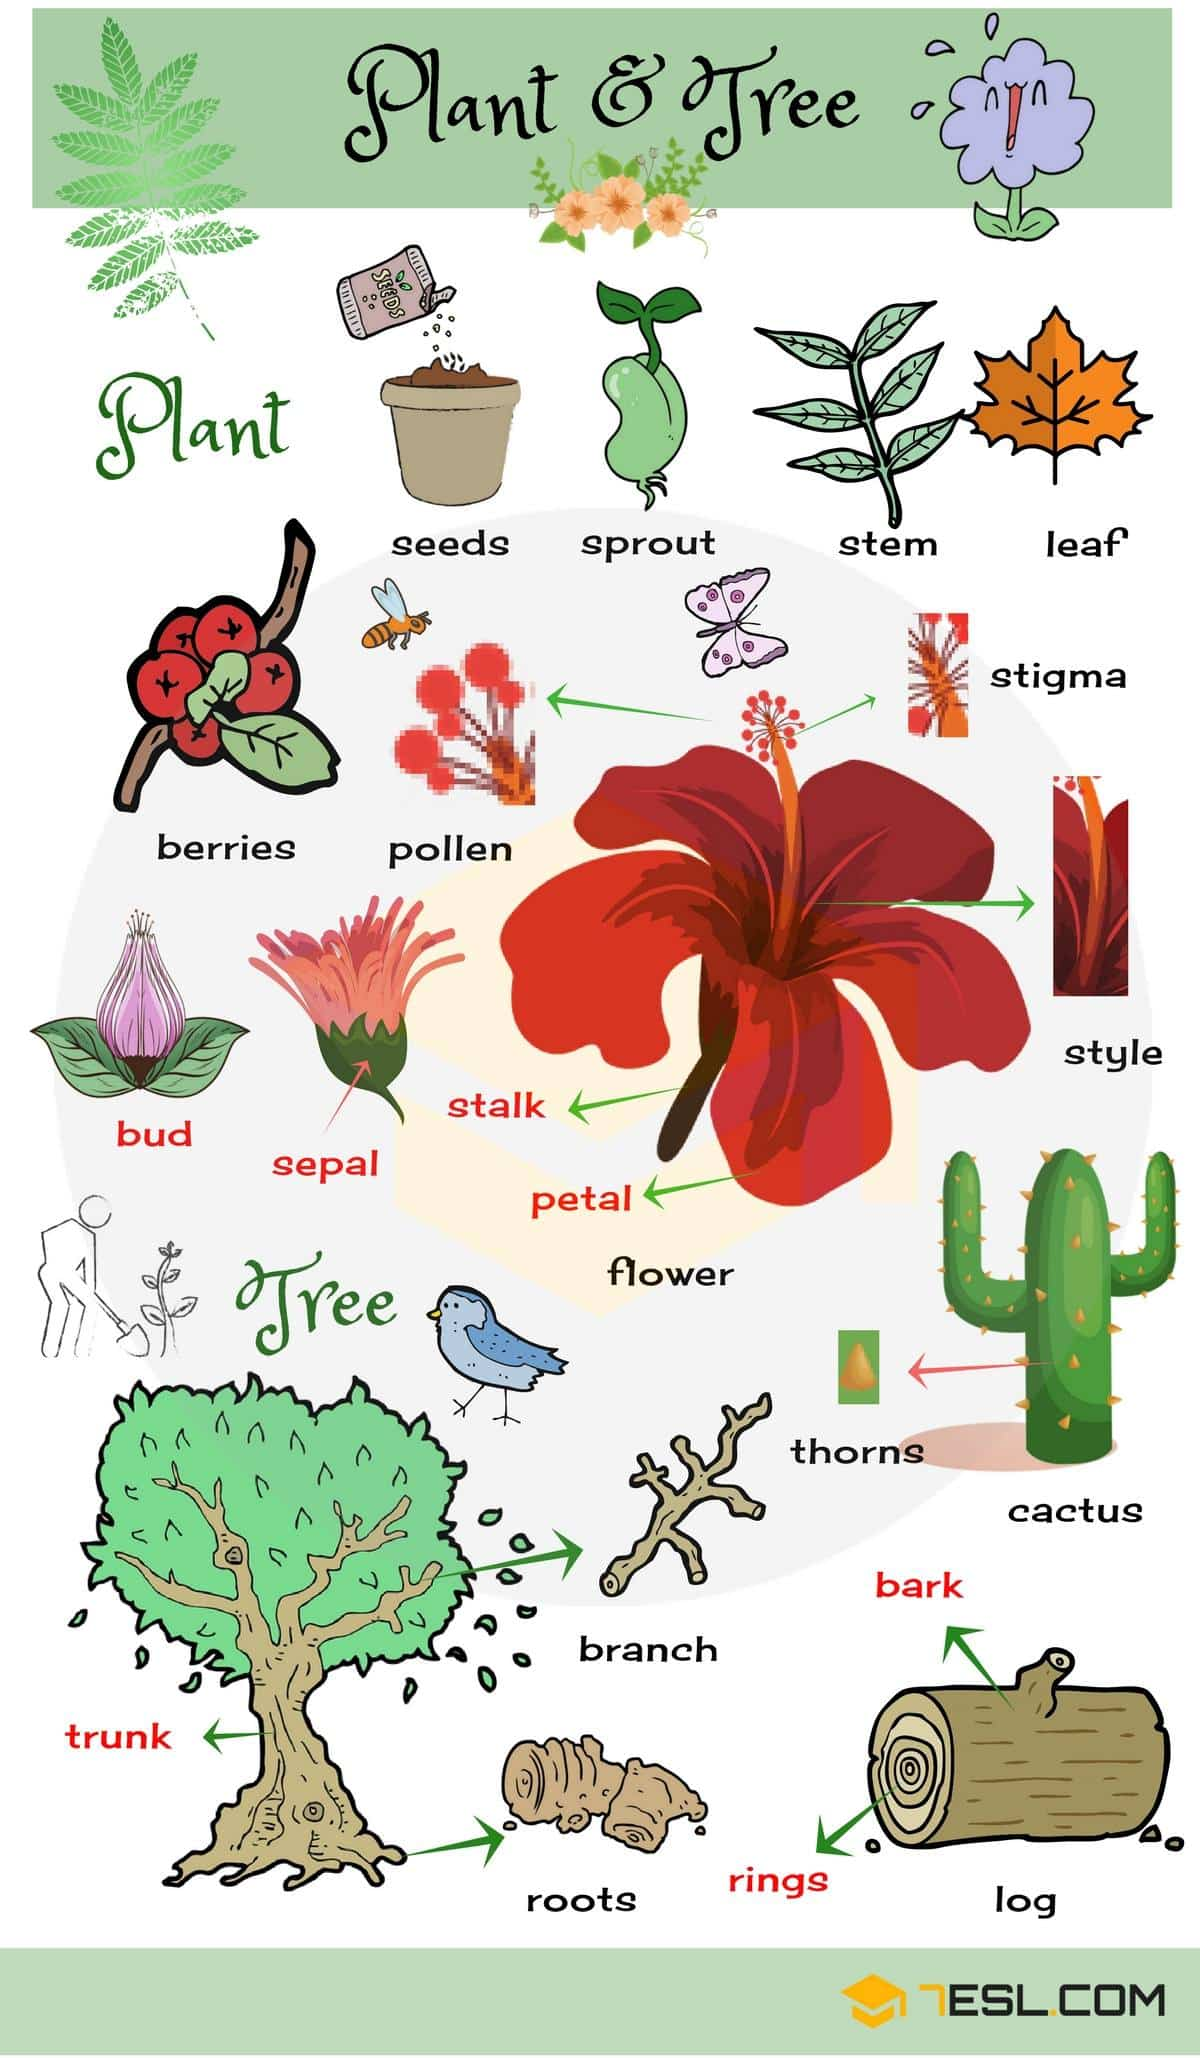 Parts of a Plant | Parts of a Flower | Parts of a Tree